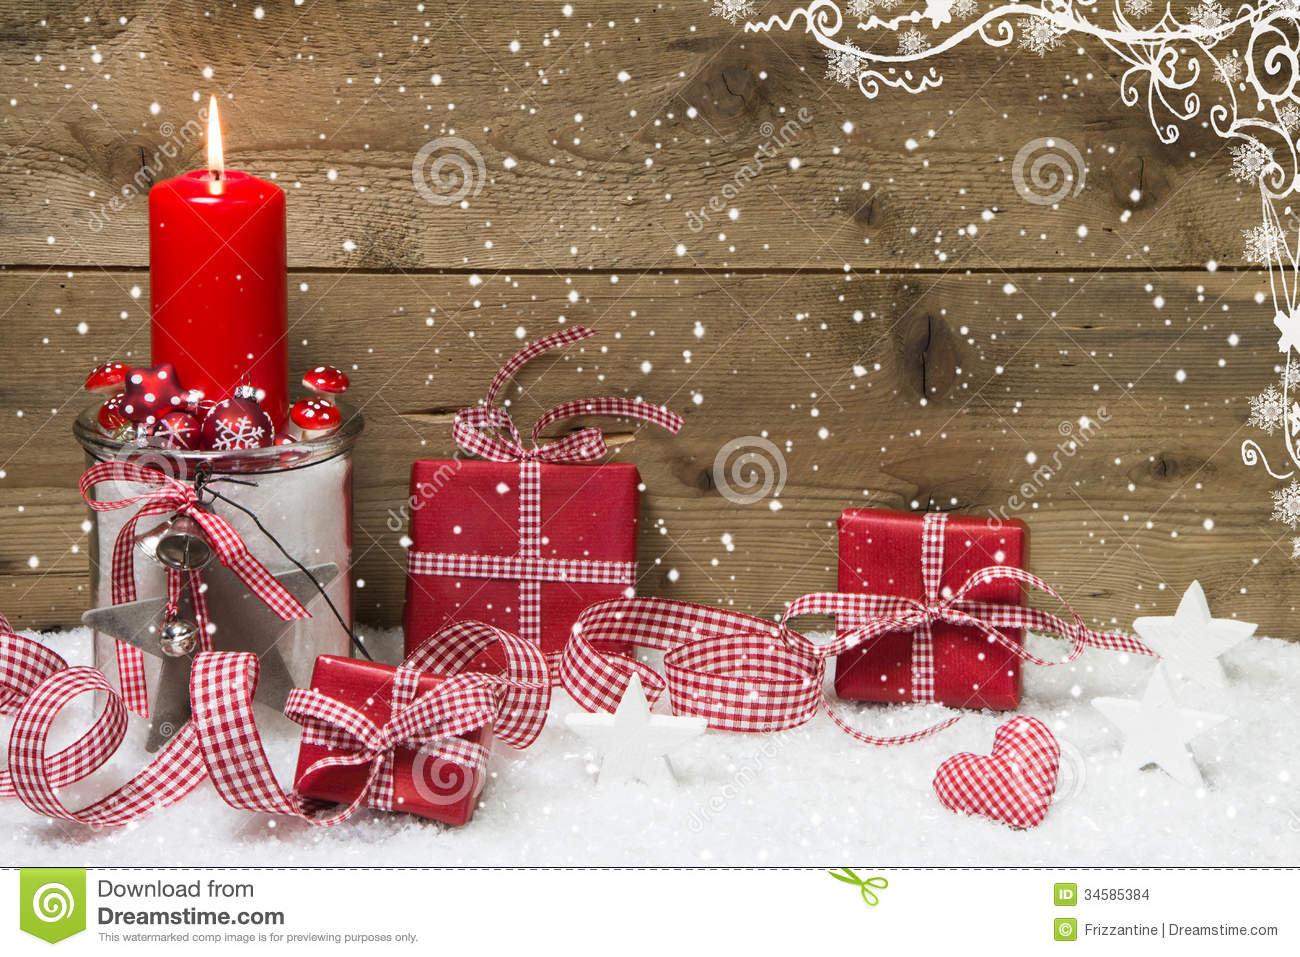 Atmospheric Christmas card with red burning candle and presents